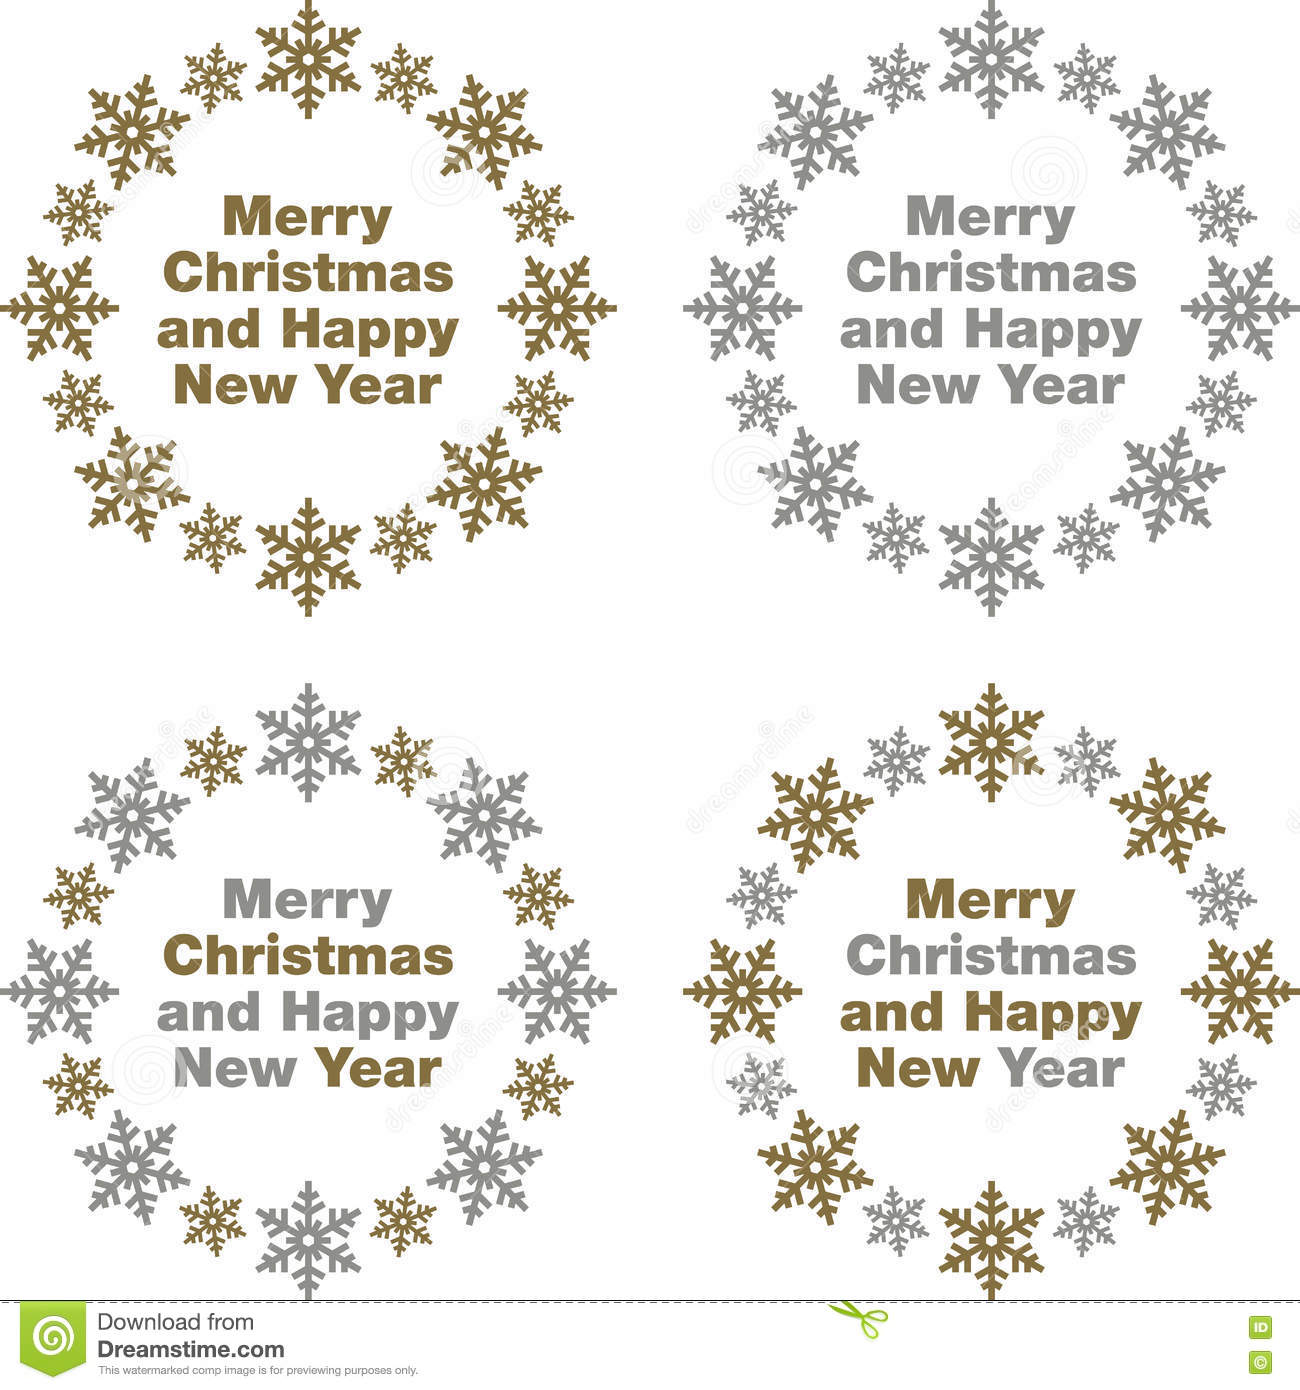 merry christmas and happy new year greetings in gold and silver snowflake border icons